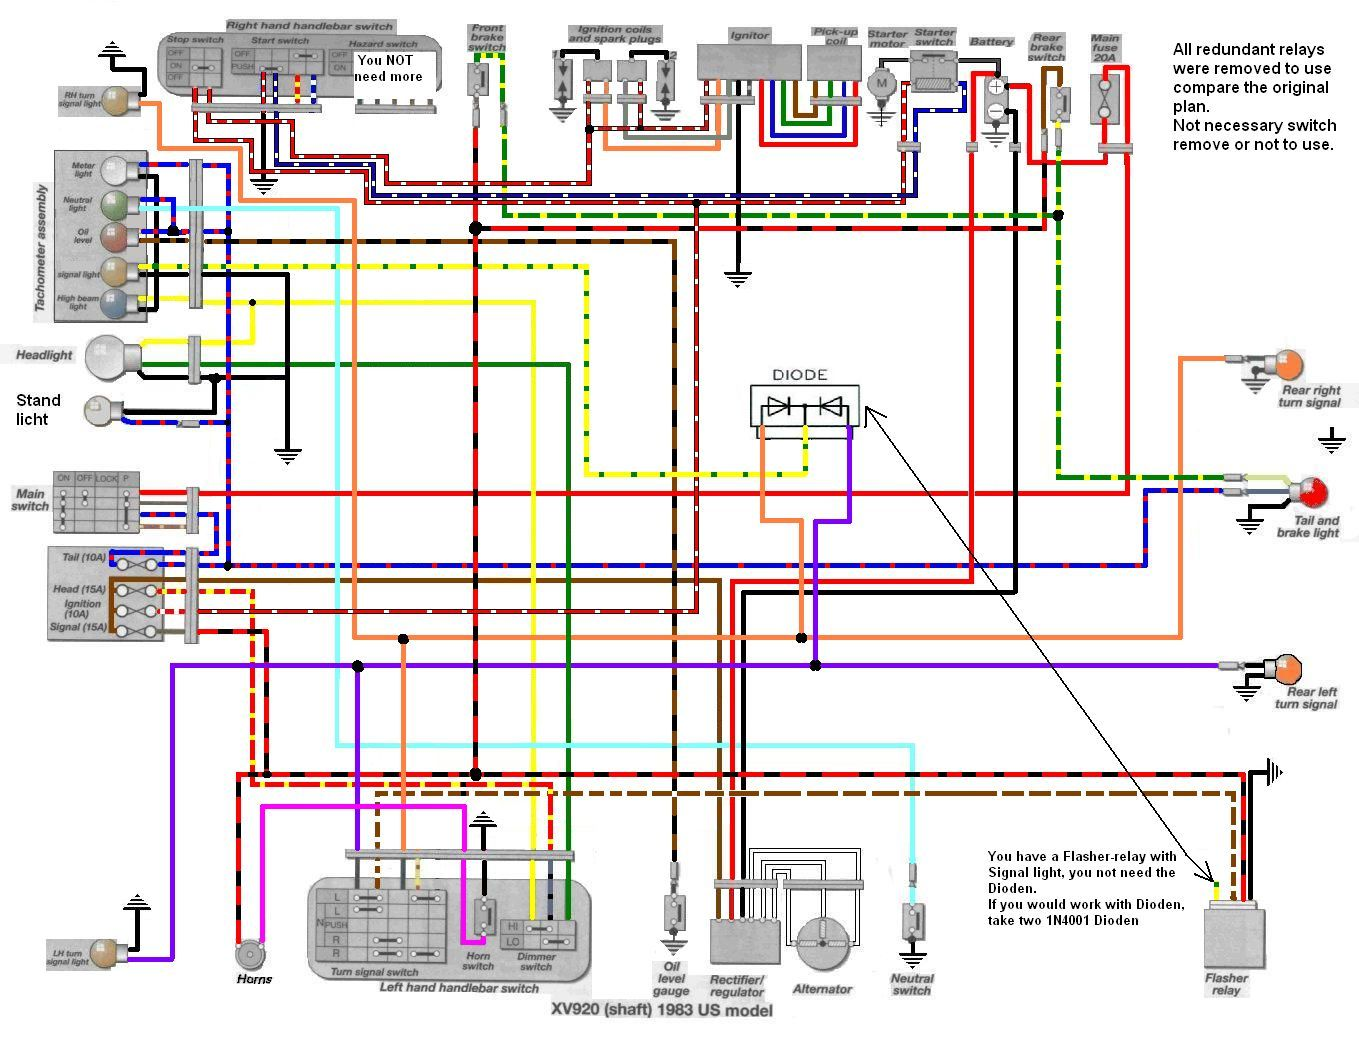 medium resolution of tr1 xv1000 xv920 wiring diagrams manfred s tr1 page all about yamaha tr1 xv1000 xv920